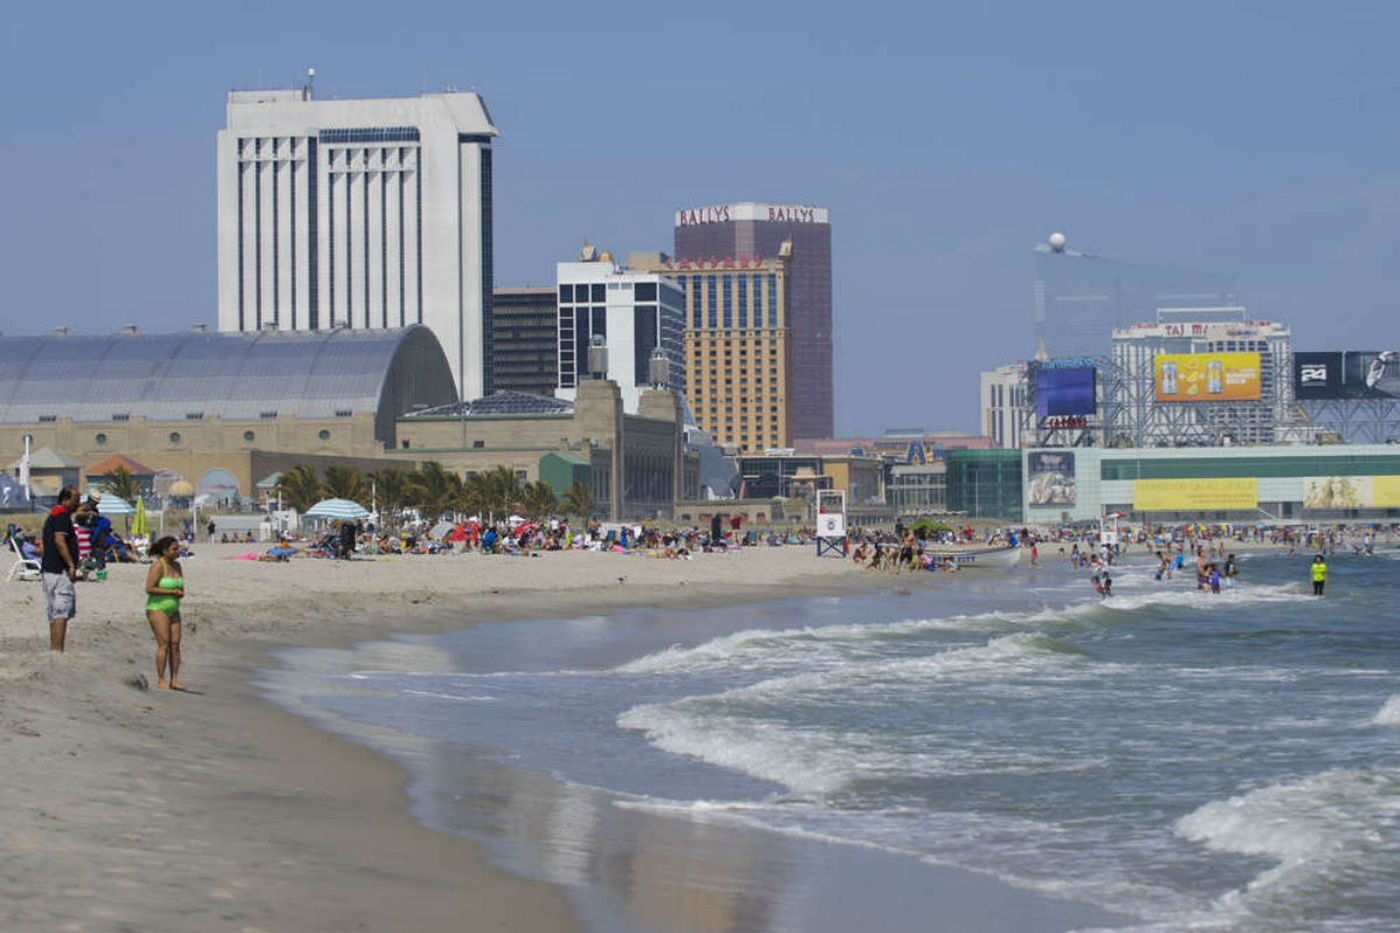 Search underway for missing teen swimmers in Atlantic City